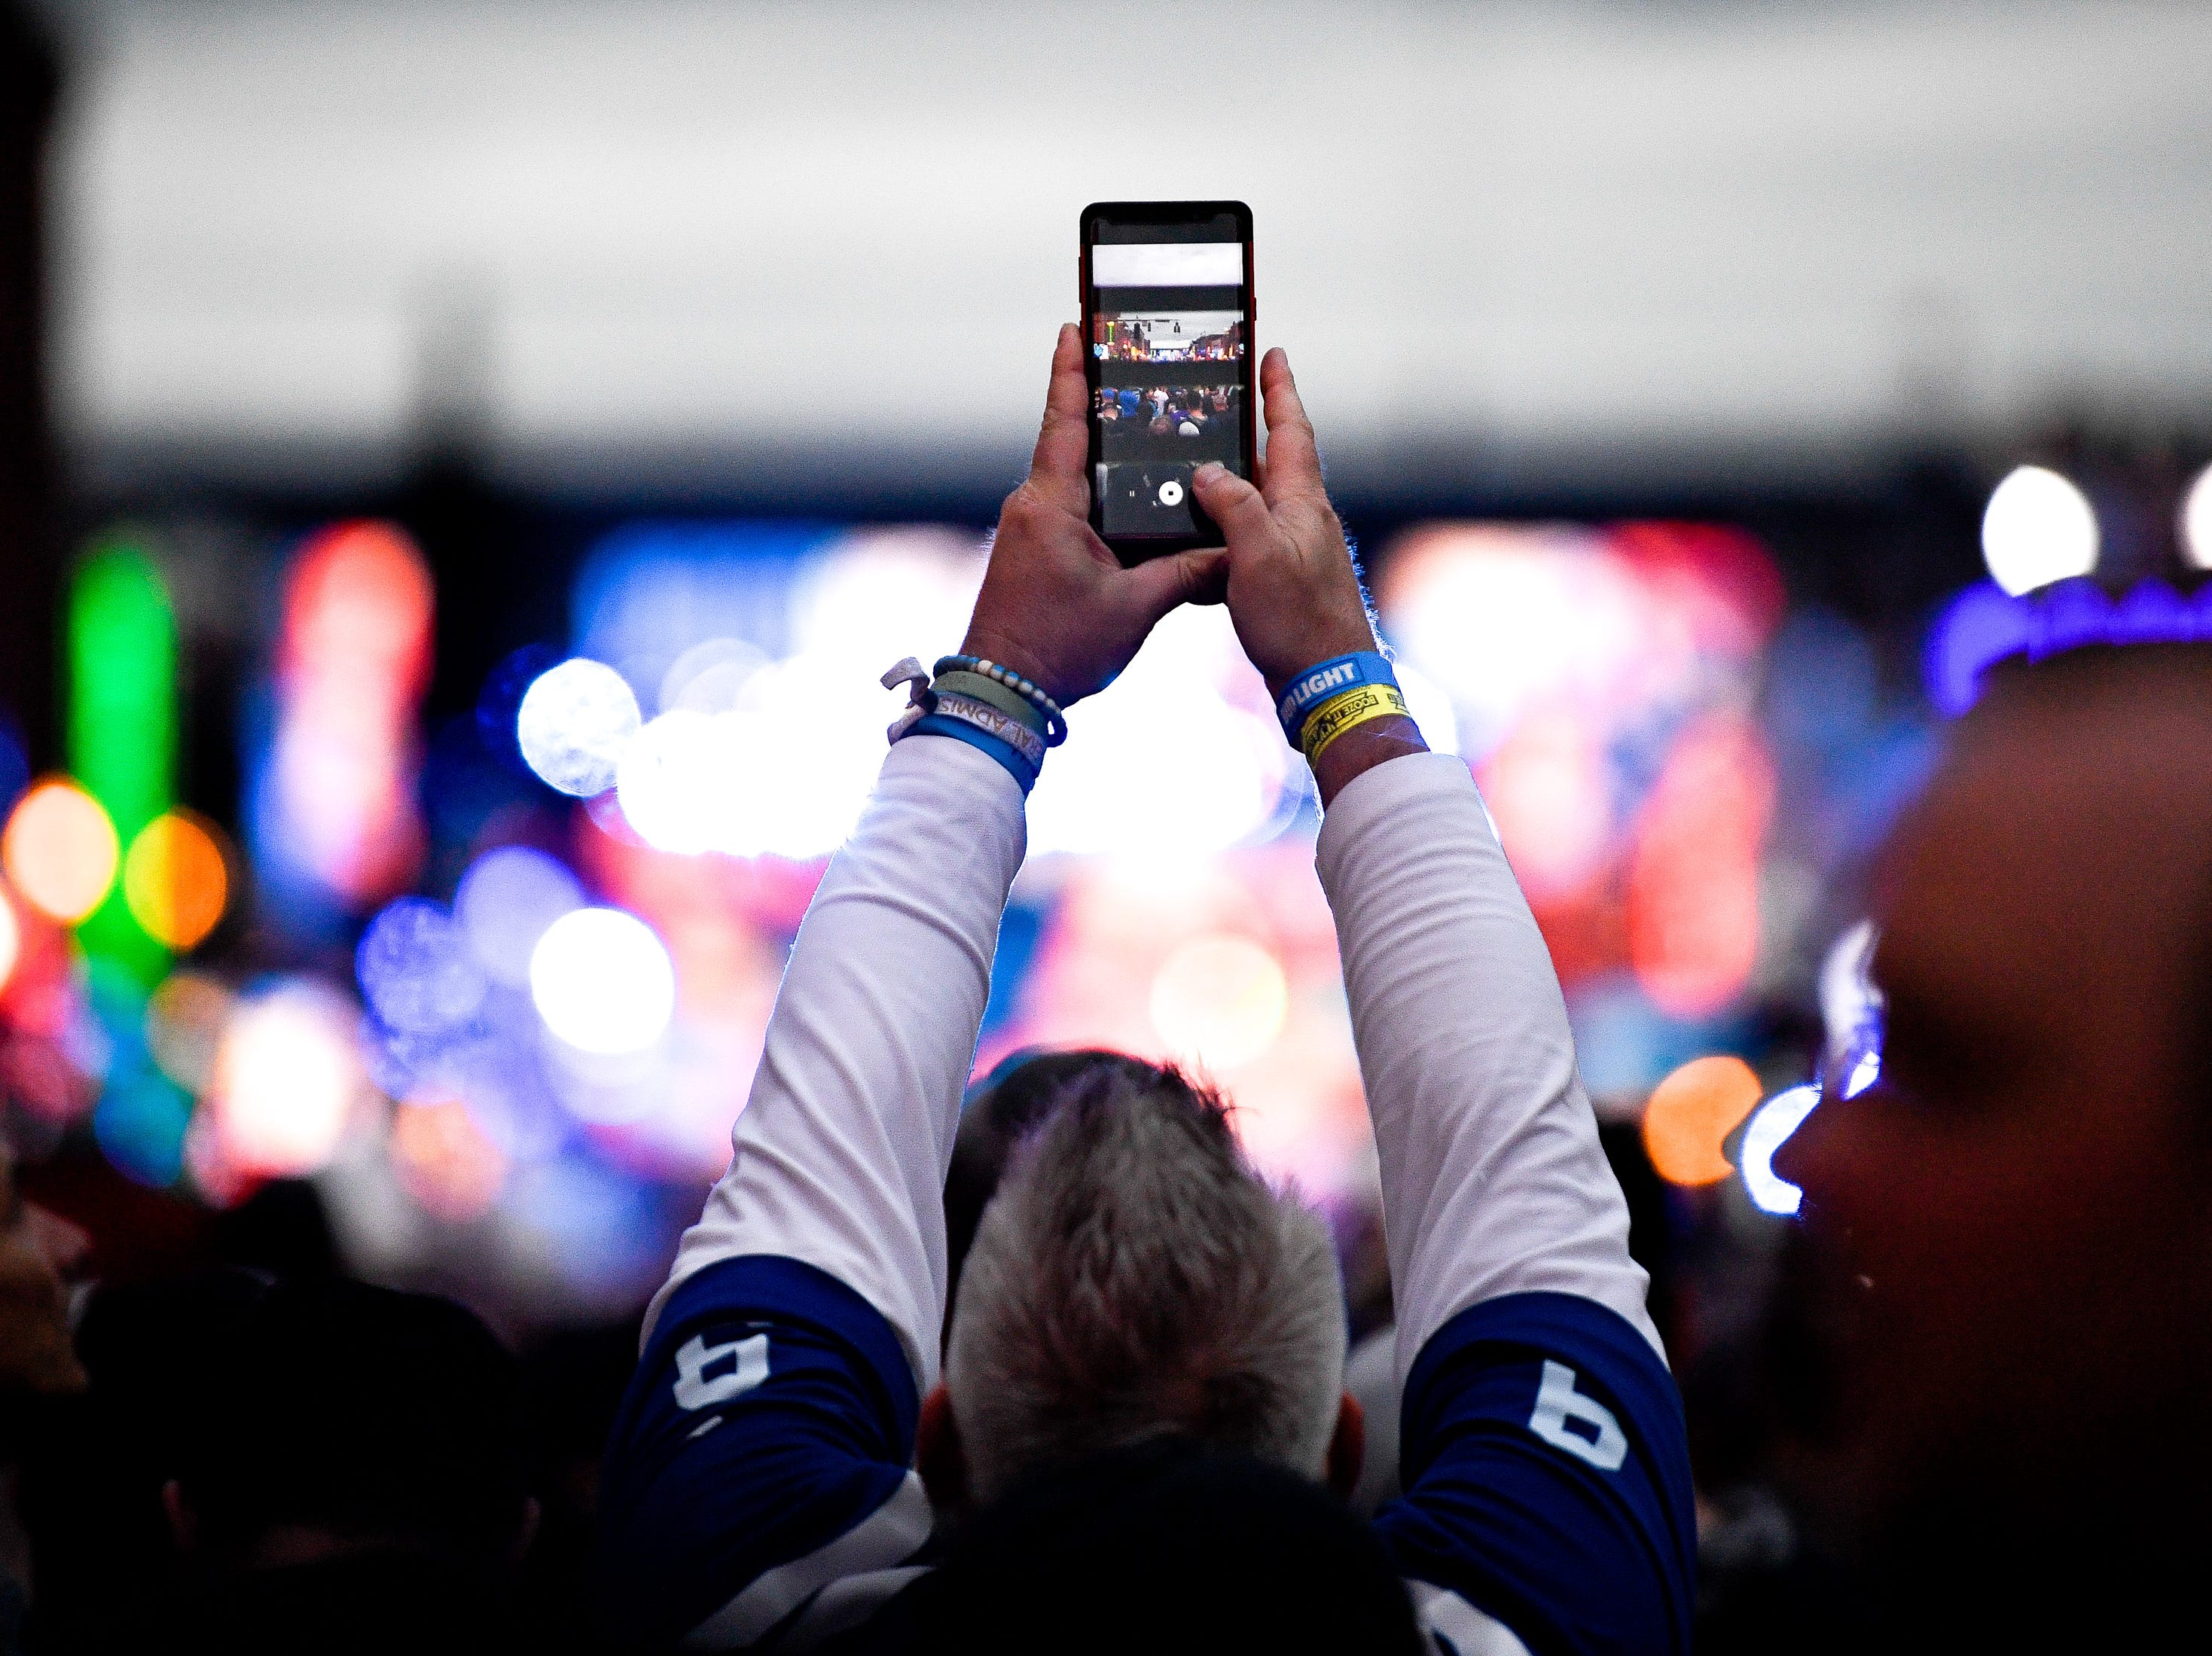 A fan takes a picture with his phone during the 2019 NFL Draft on Broadway in Nashville, Tenn., Thursday, April 25, 2019.